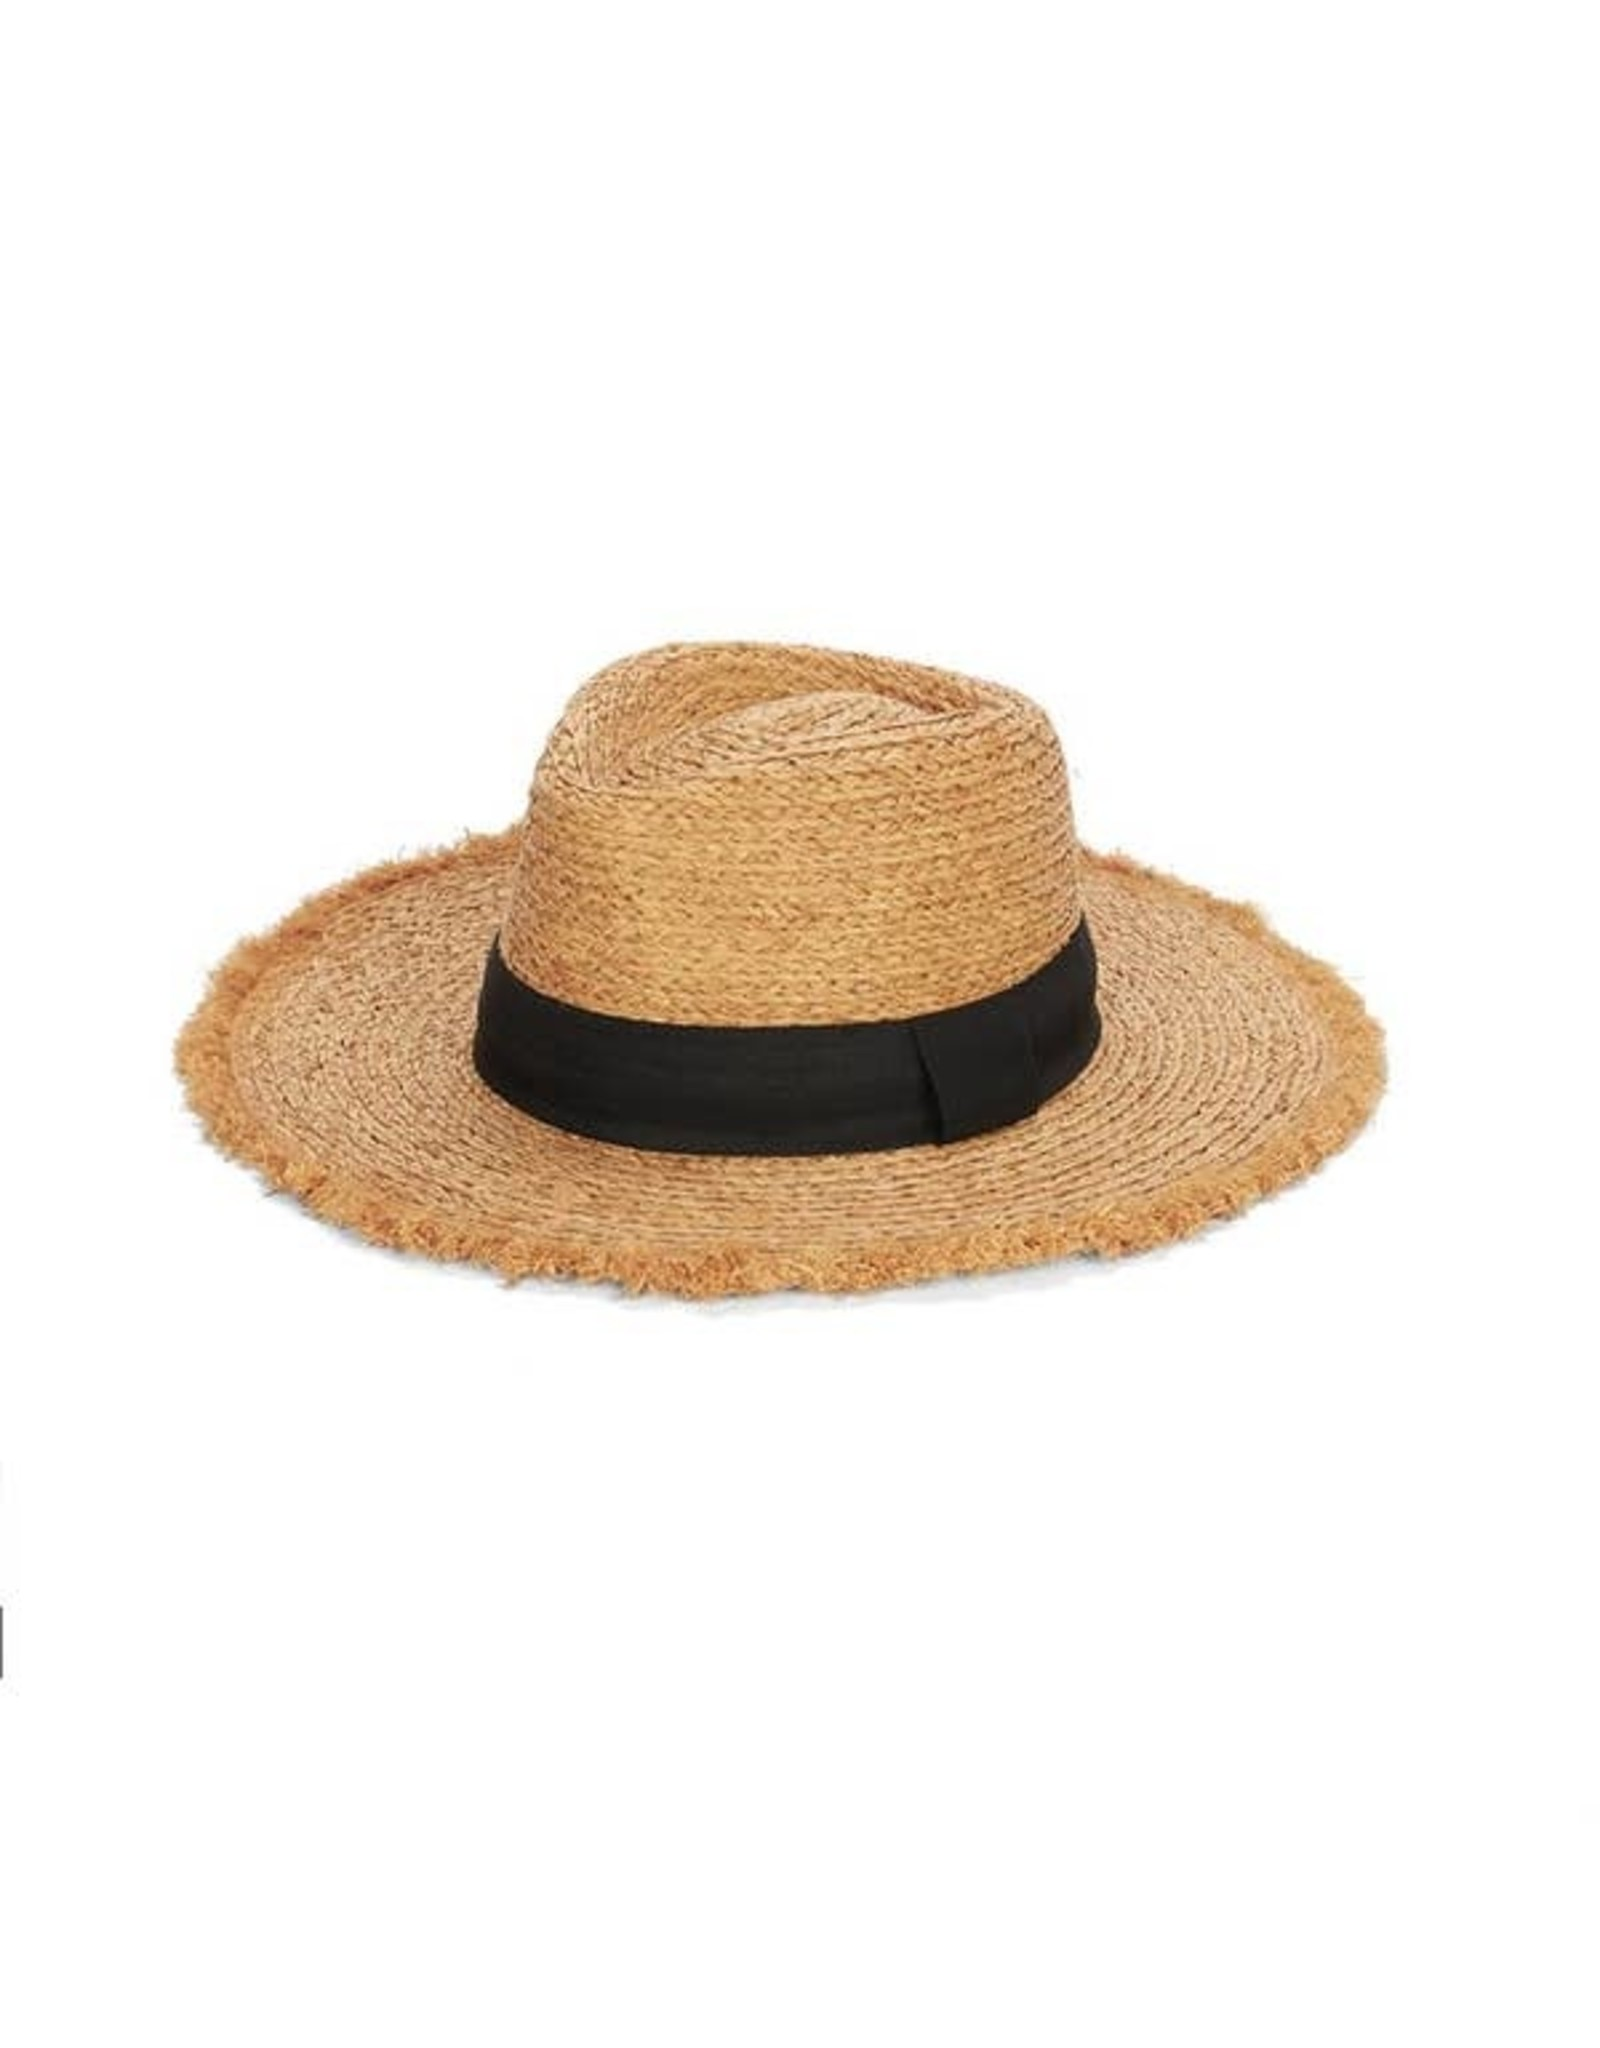 PACKABLE RAFFIA FRINGE BRIM RANCH HAT